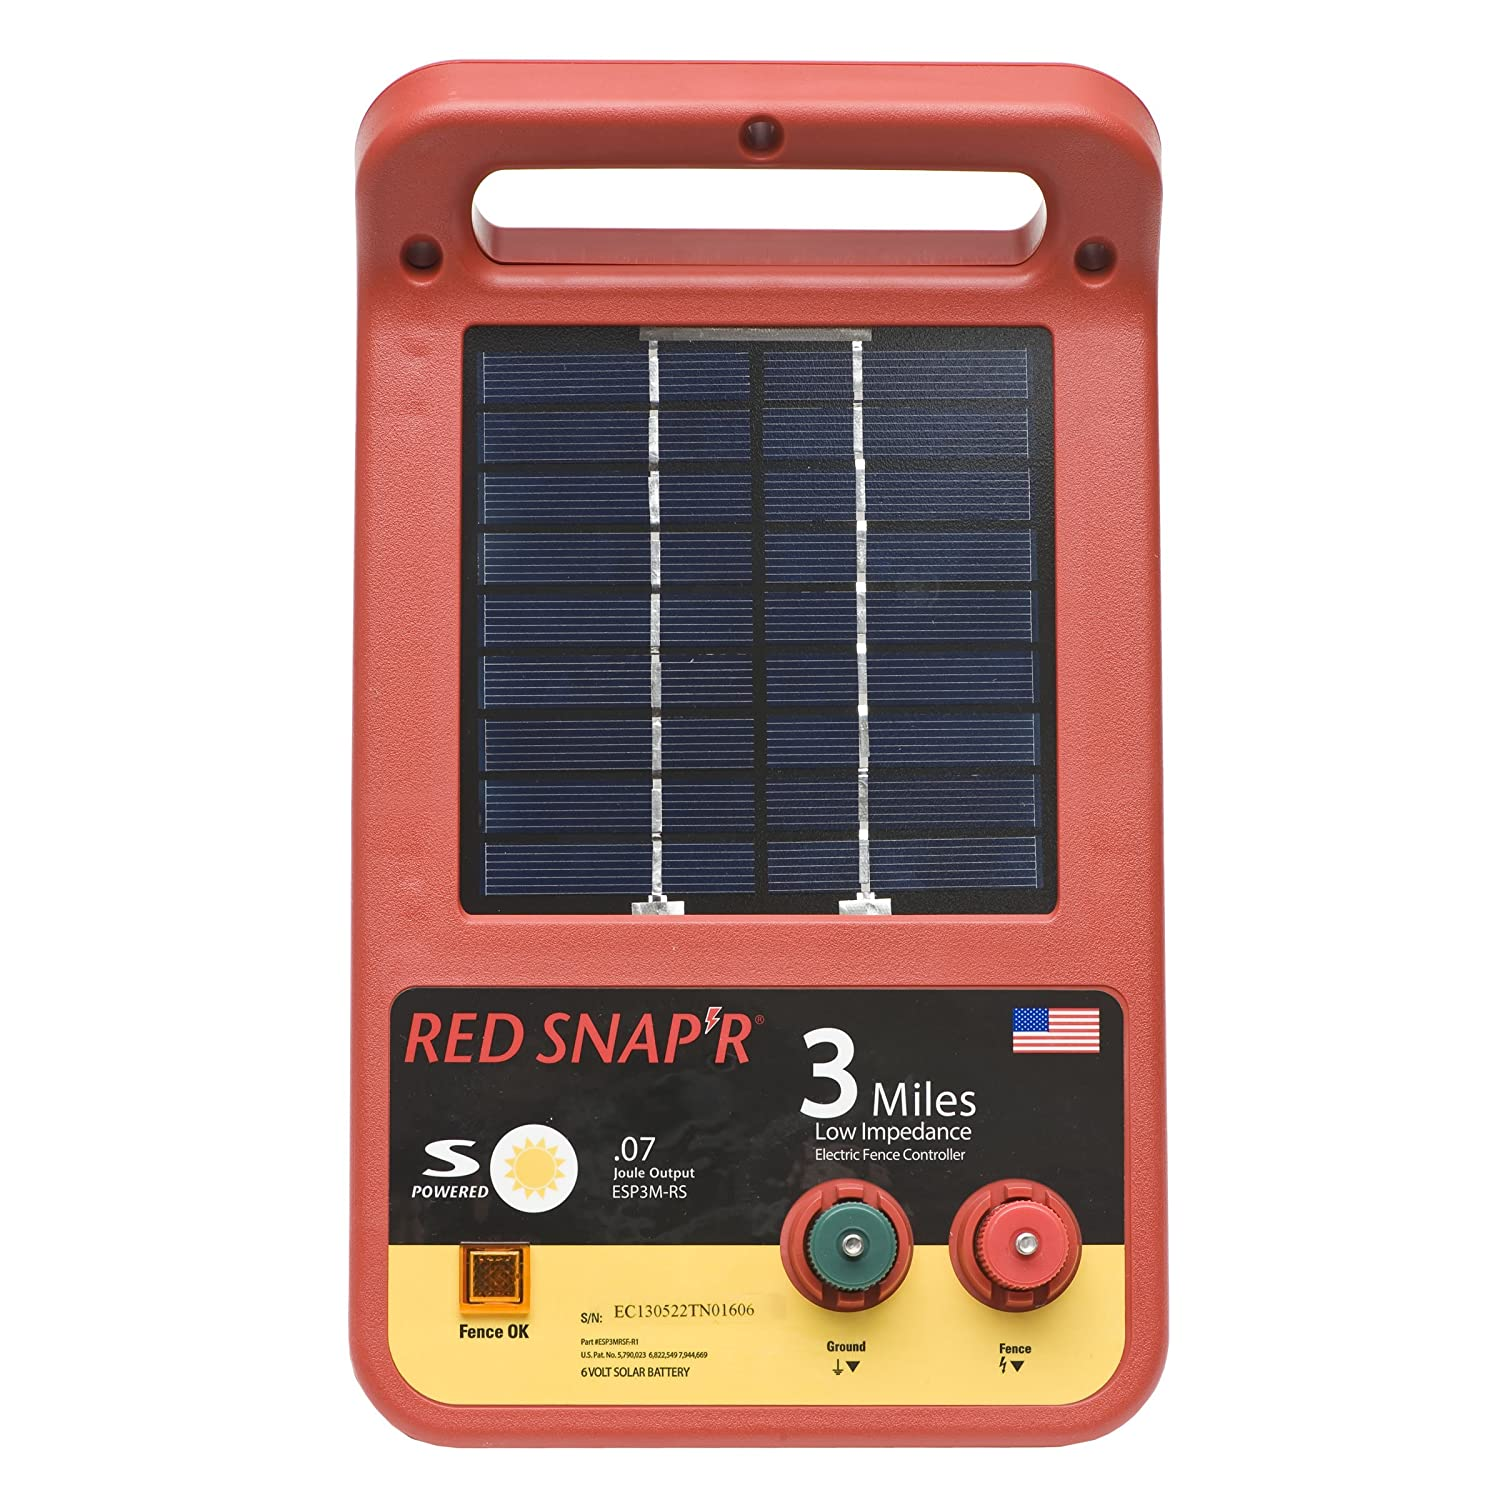 red snap r esp3m rs 3 mile solar low impedance